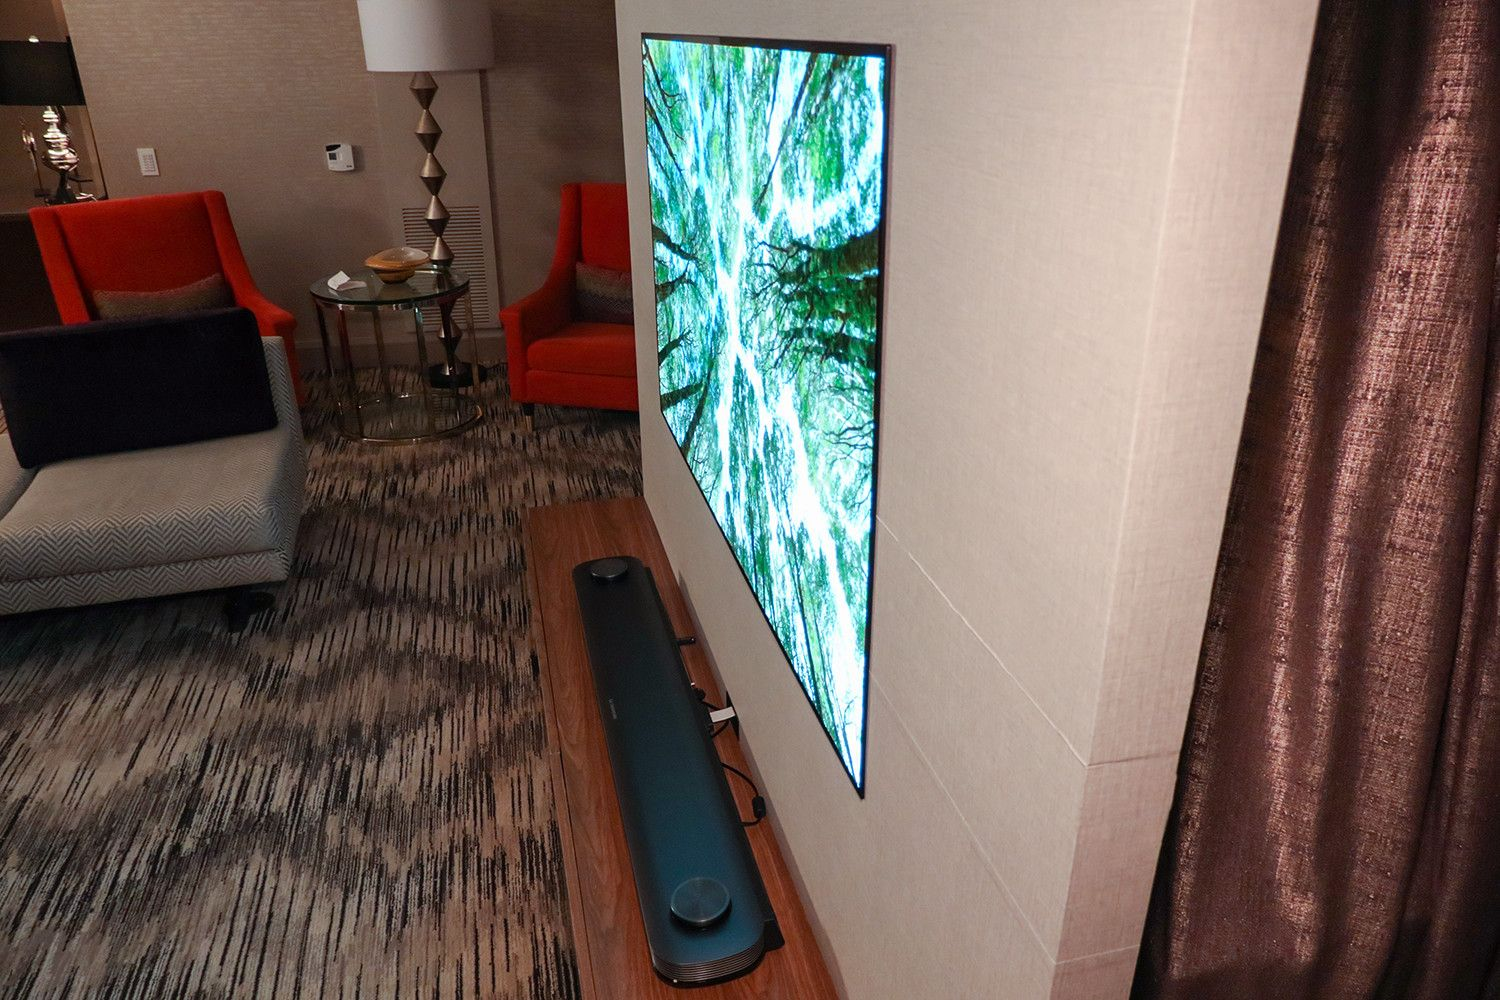 Lgs Stunning Wallpaper Oled Sets The Standard By Which